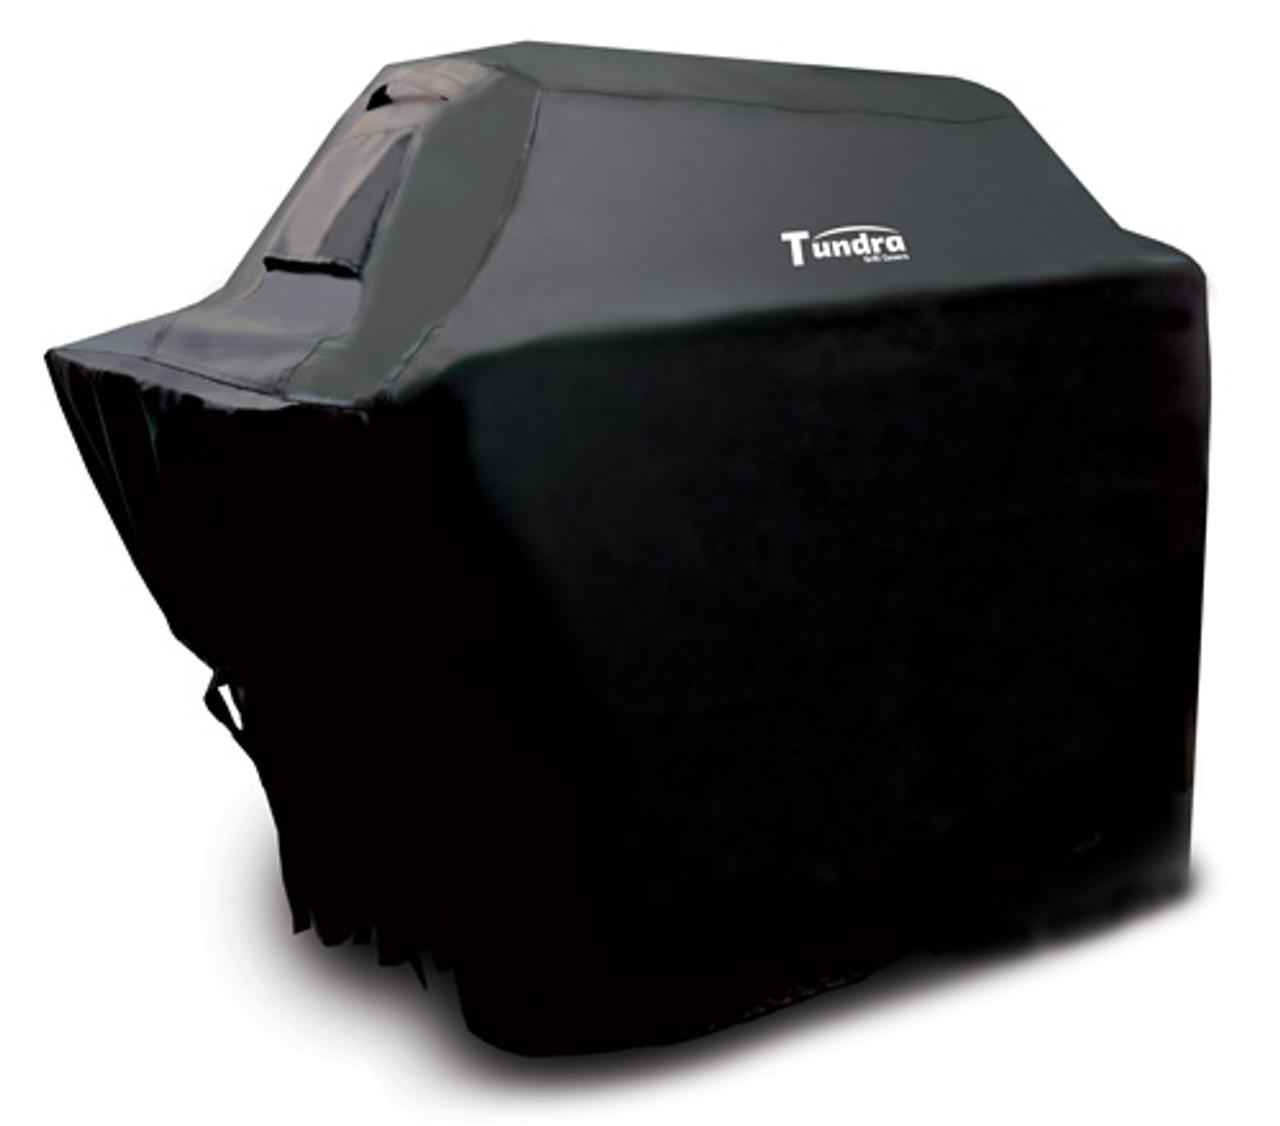 Tundra Grill Cover image